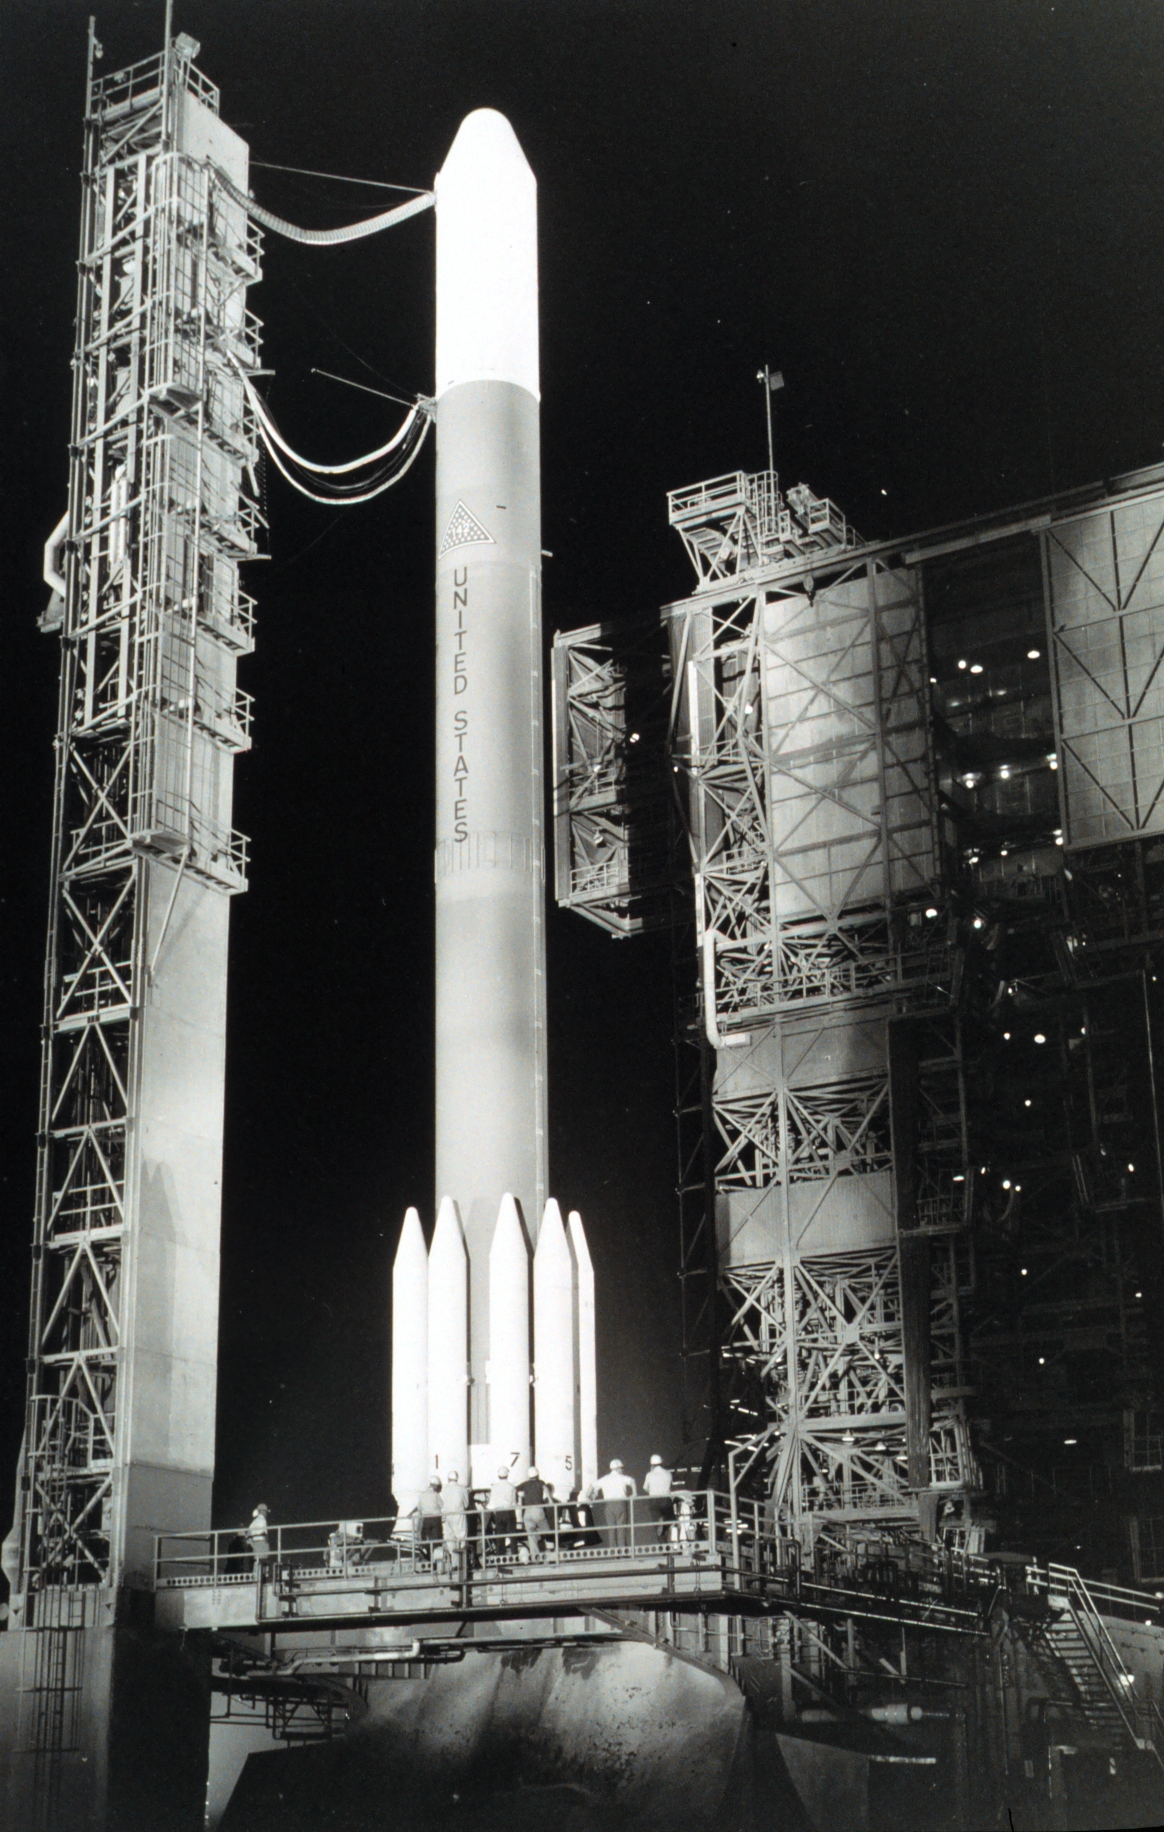 GOES-C (known as GOES-3 once operational) awaits launch aboard Delta Launch Vehicle 142. It was placed in geostationary orbit at 135 degrees west longitude. Credit: NASA